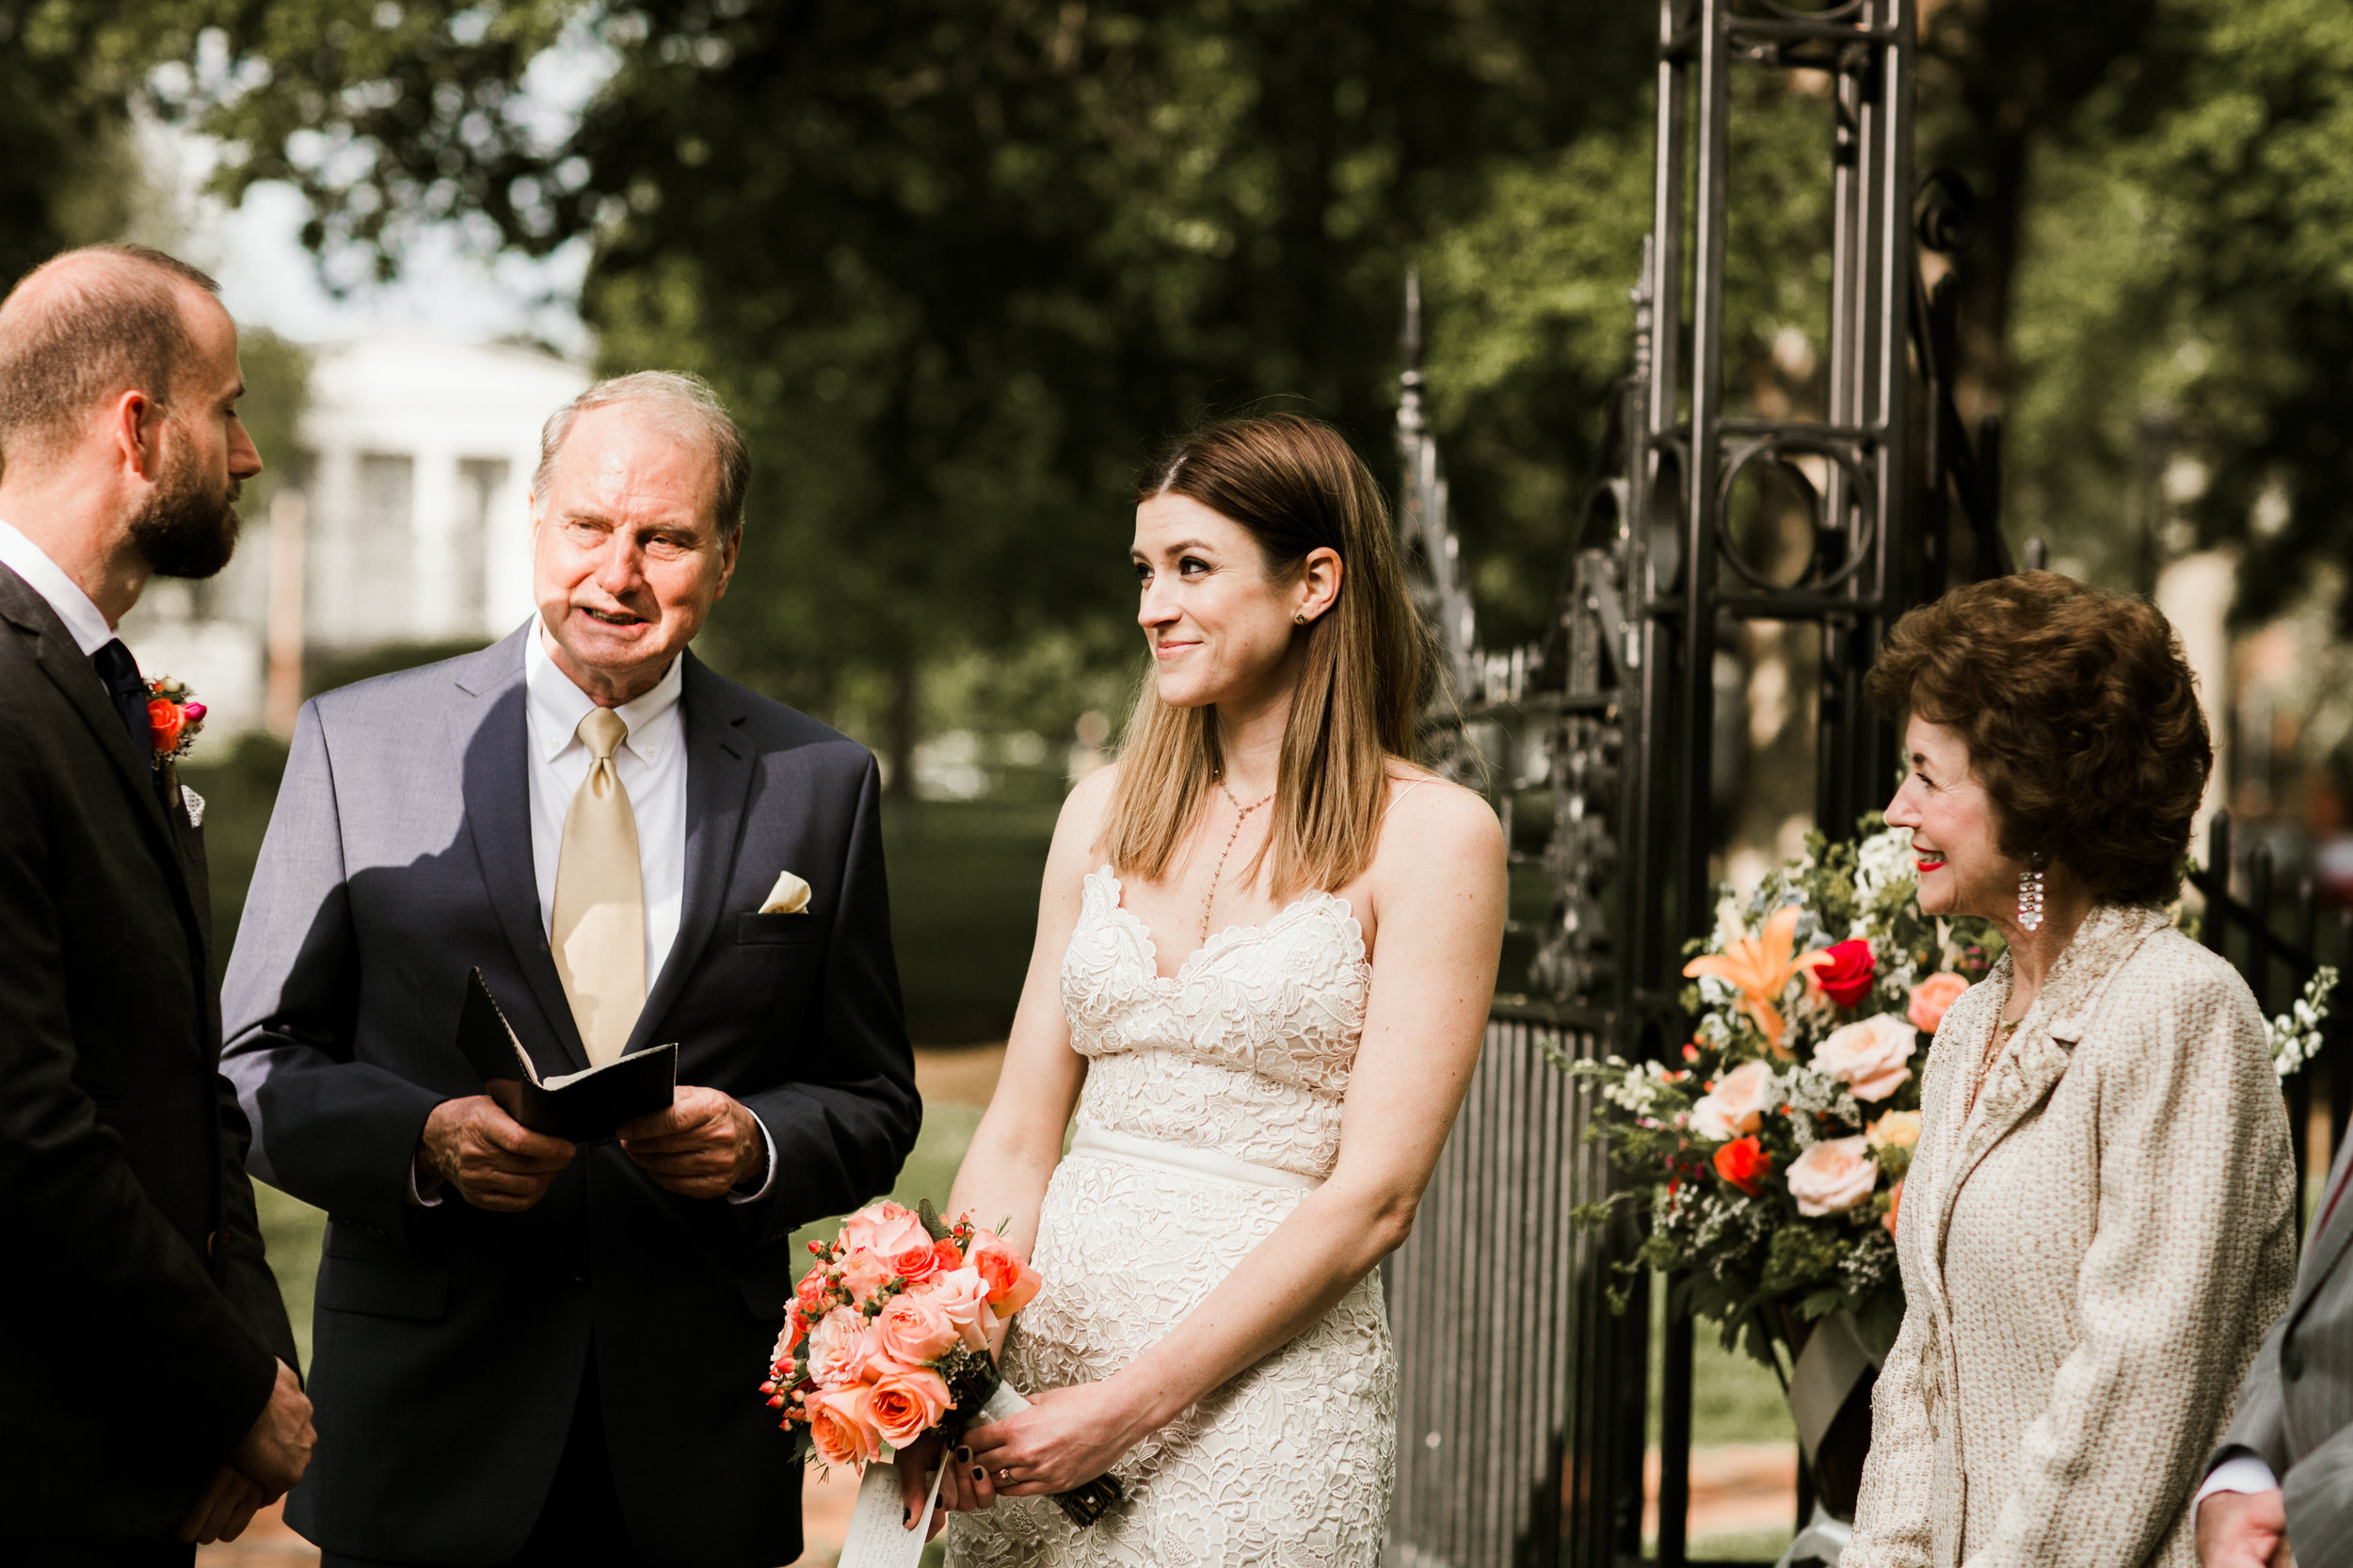 Louisville Courthouse Wedding Louisville Wedding Photographer 2018 Crystal Ludwick Photo Louisville Wedding Photographer Kentucky Wedding Photographer (46 of 76).jpg